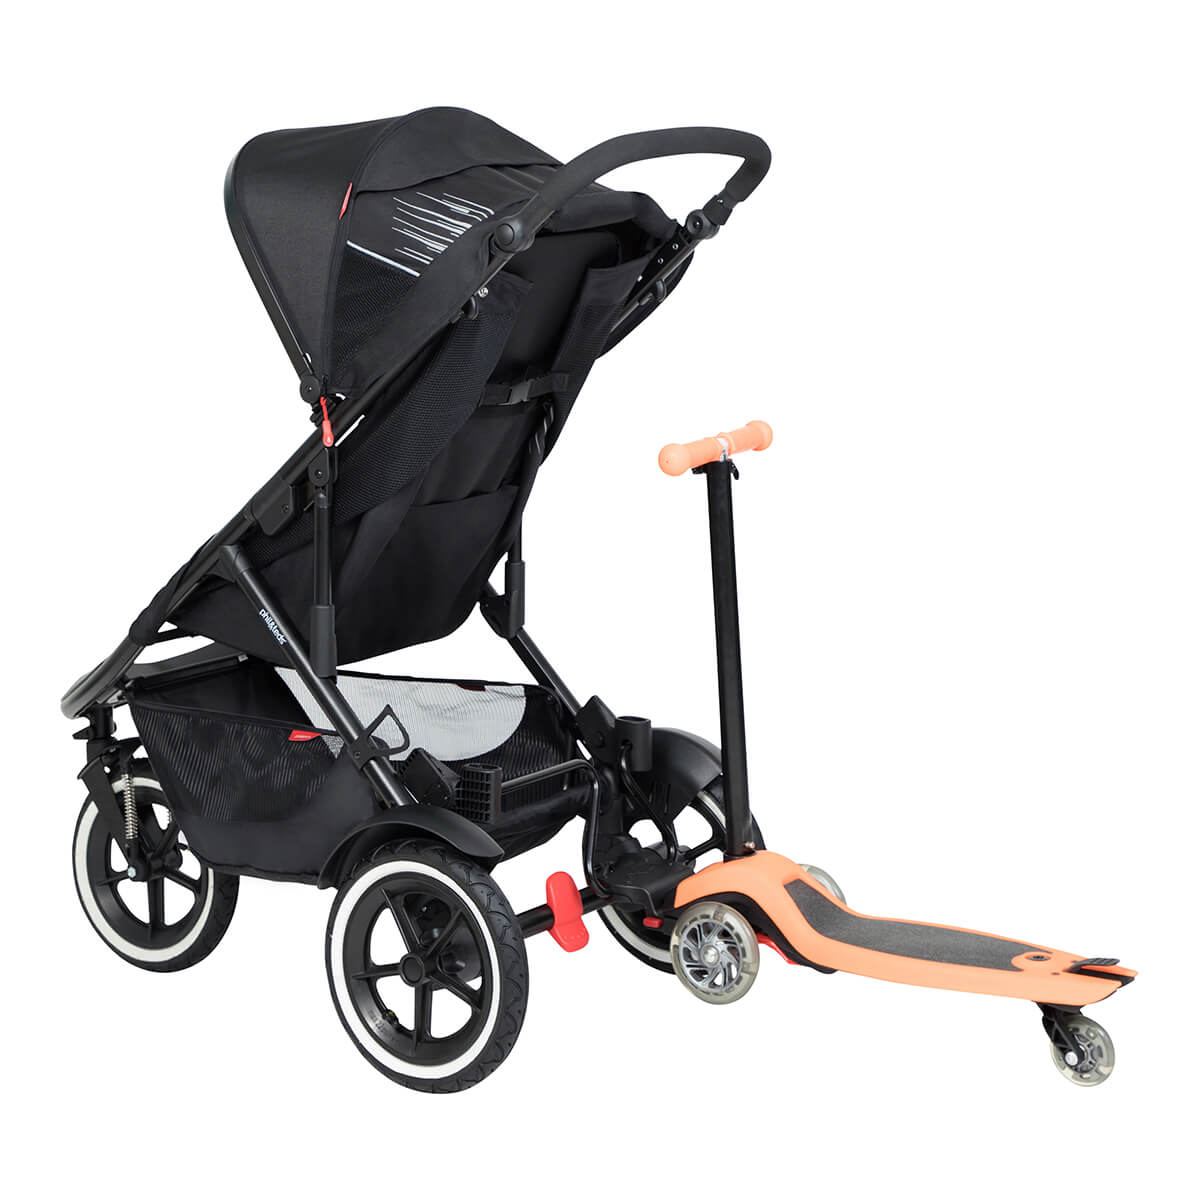 https://cdn.accentuate.io/4509906731085/19466204315842/philteds-sport-buggy-with-freerider-stroller-board-in-rear-v1626485484123.jpg?1200x1200